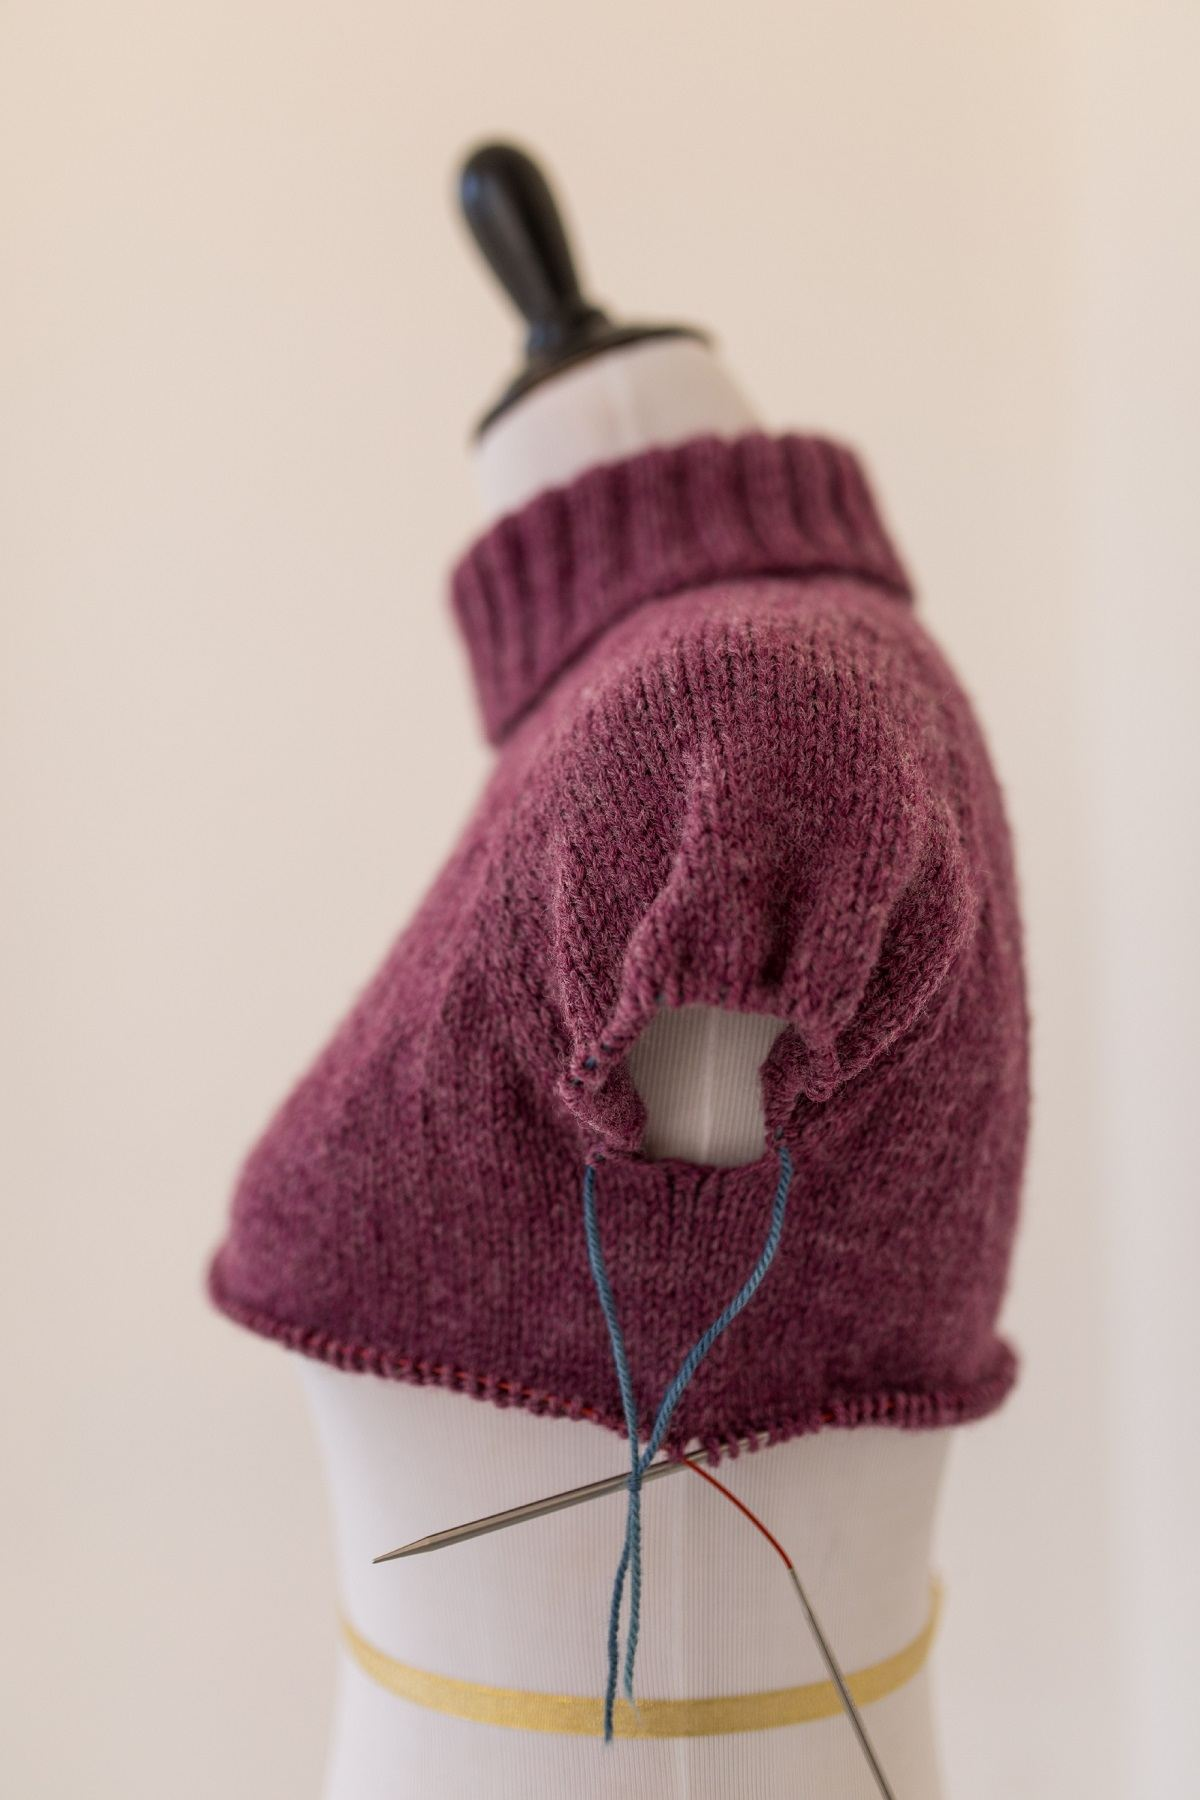 Side view sweater in progress on a mannequin